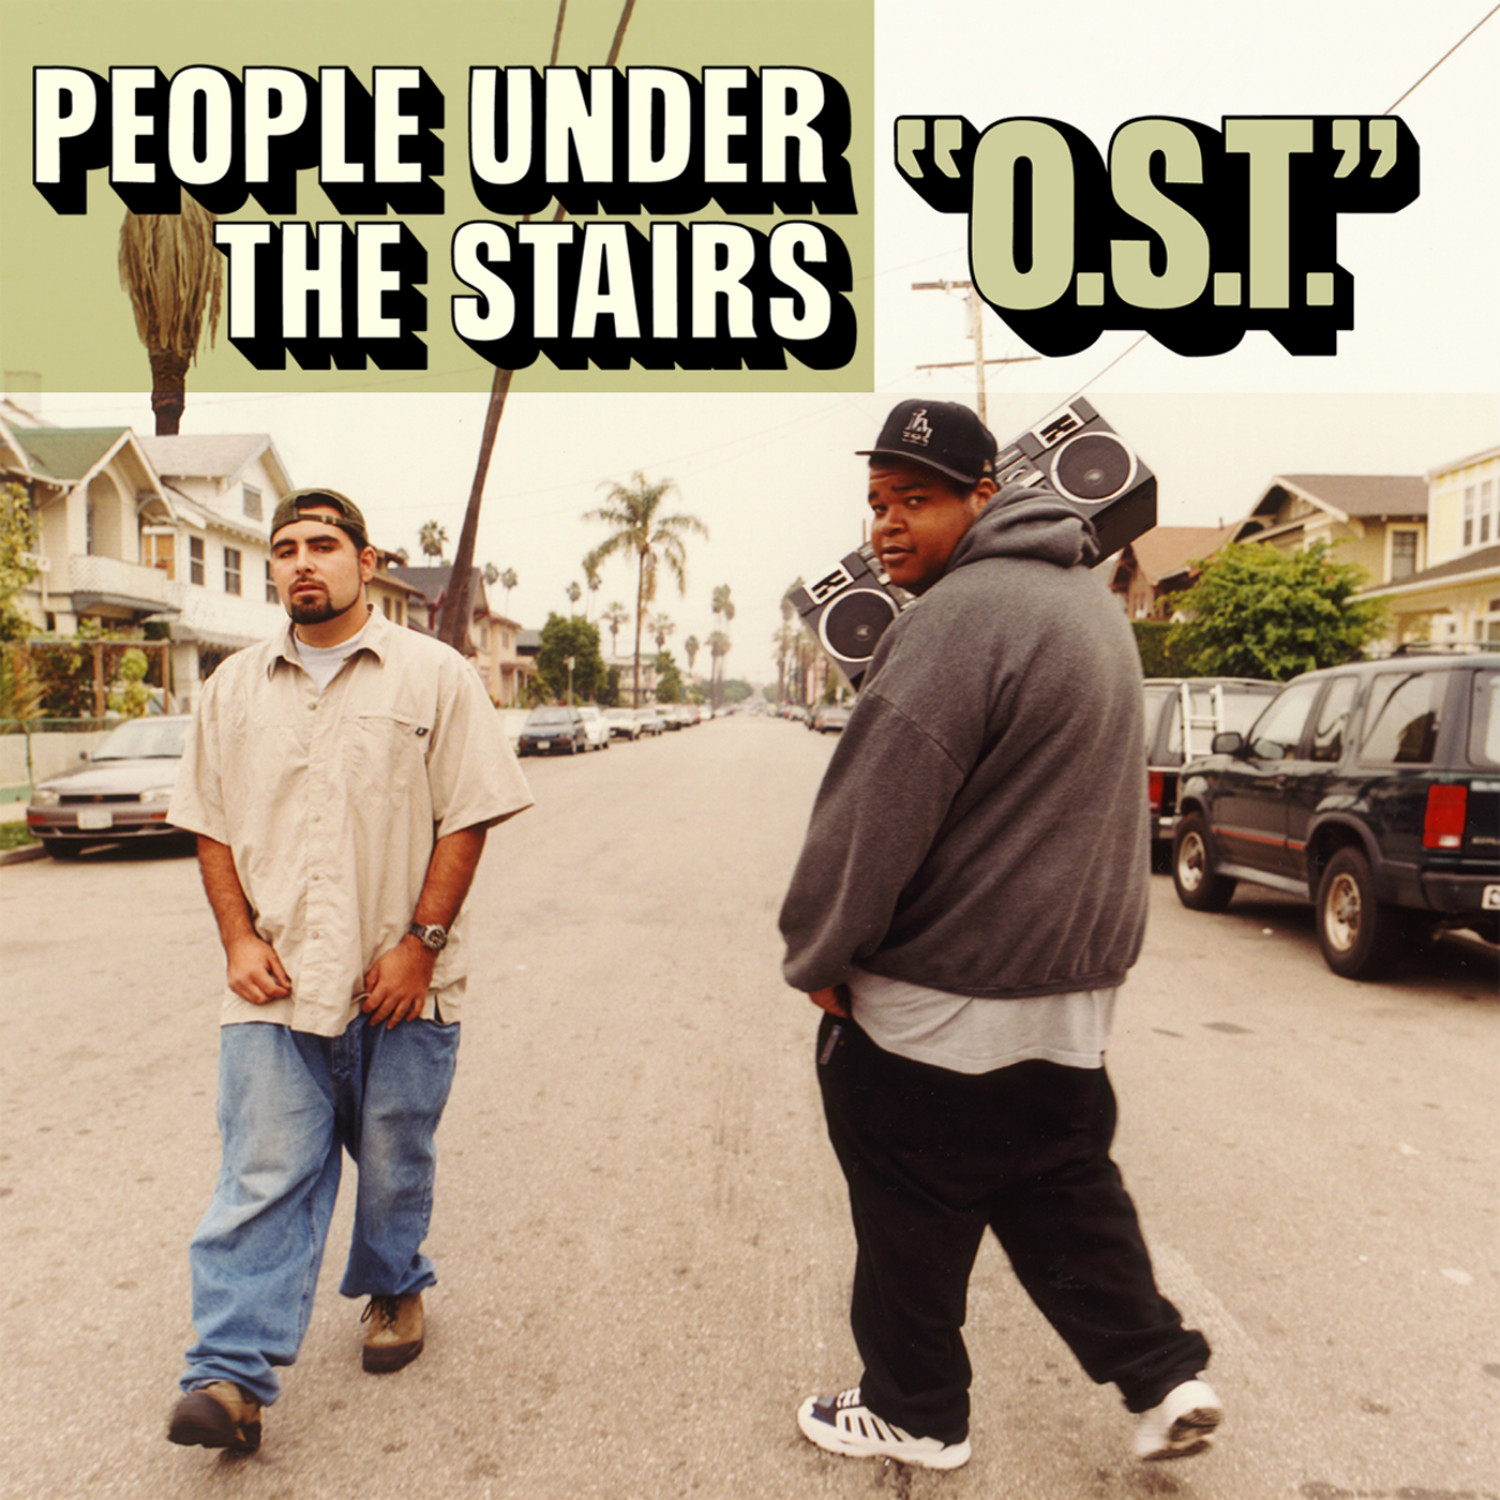 """People Under The Stairs - """"O.S.T"""""""